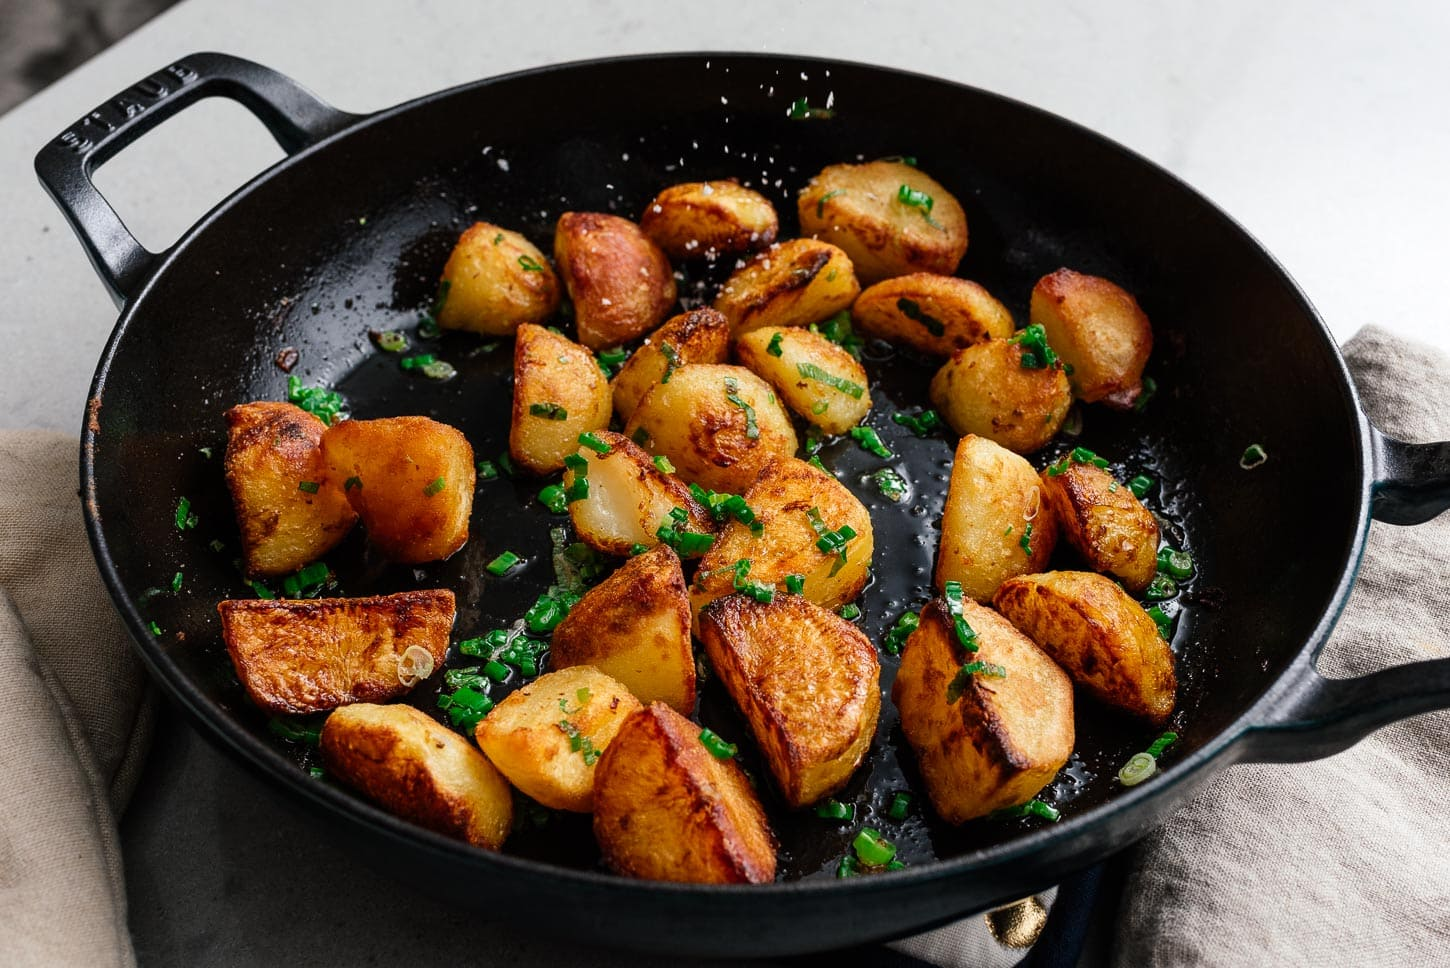 seasoning roasted potatoes with sea salt | www.iamafoodblog.com